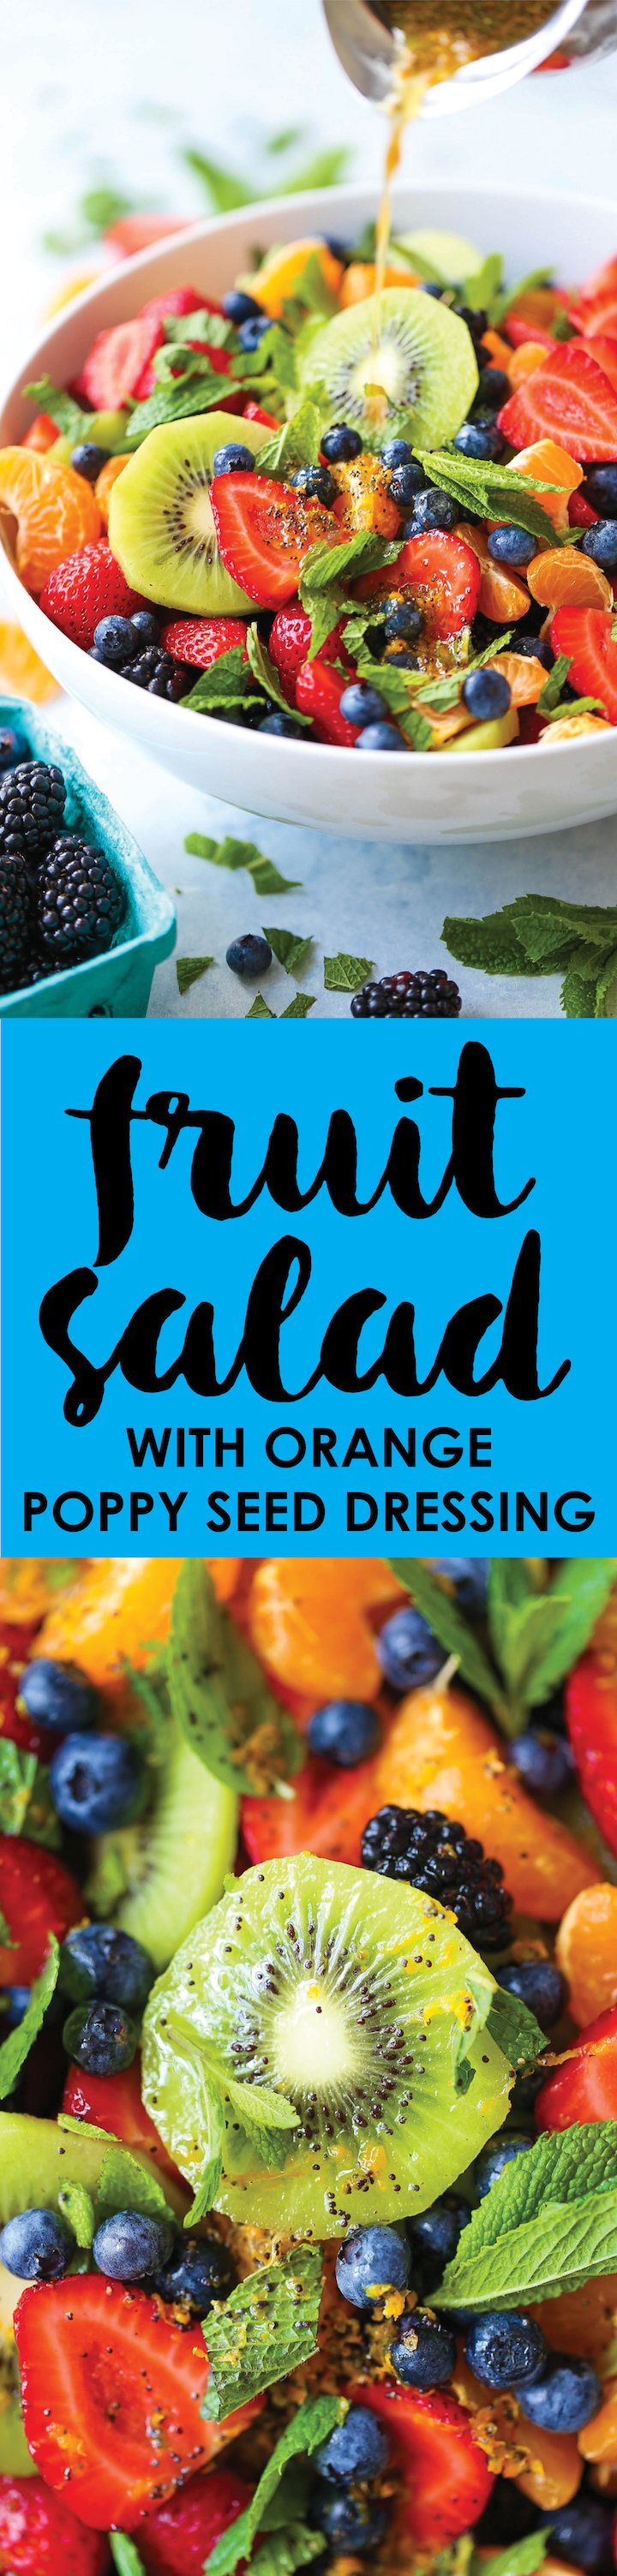 Easy Fruit Salad with Orange Poppy Seed Dressing - Simply the best and easiest fruit salad! You can use fruits in season but the BEST part is the dressing!